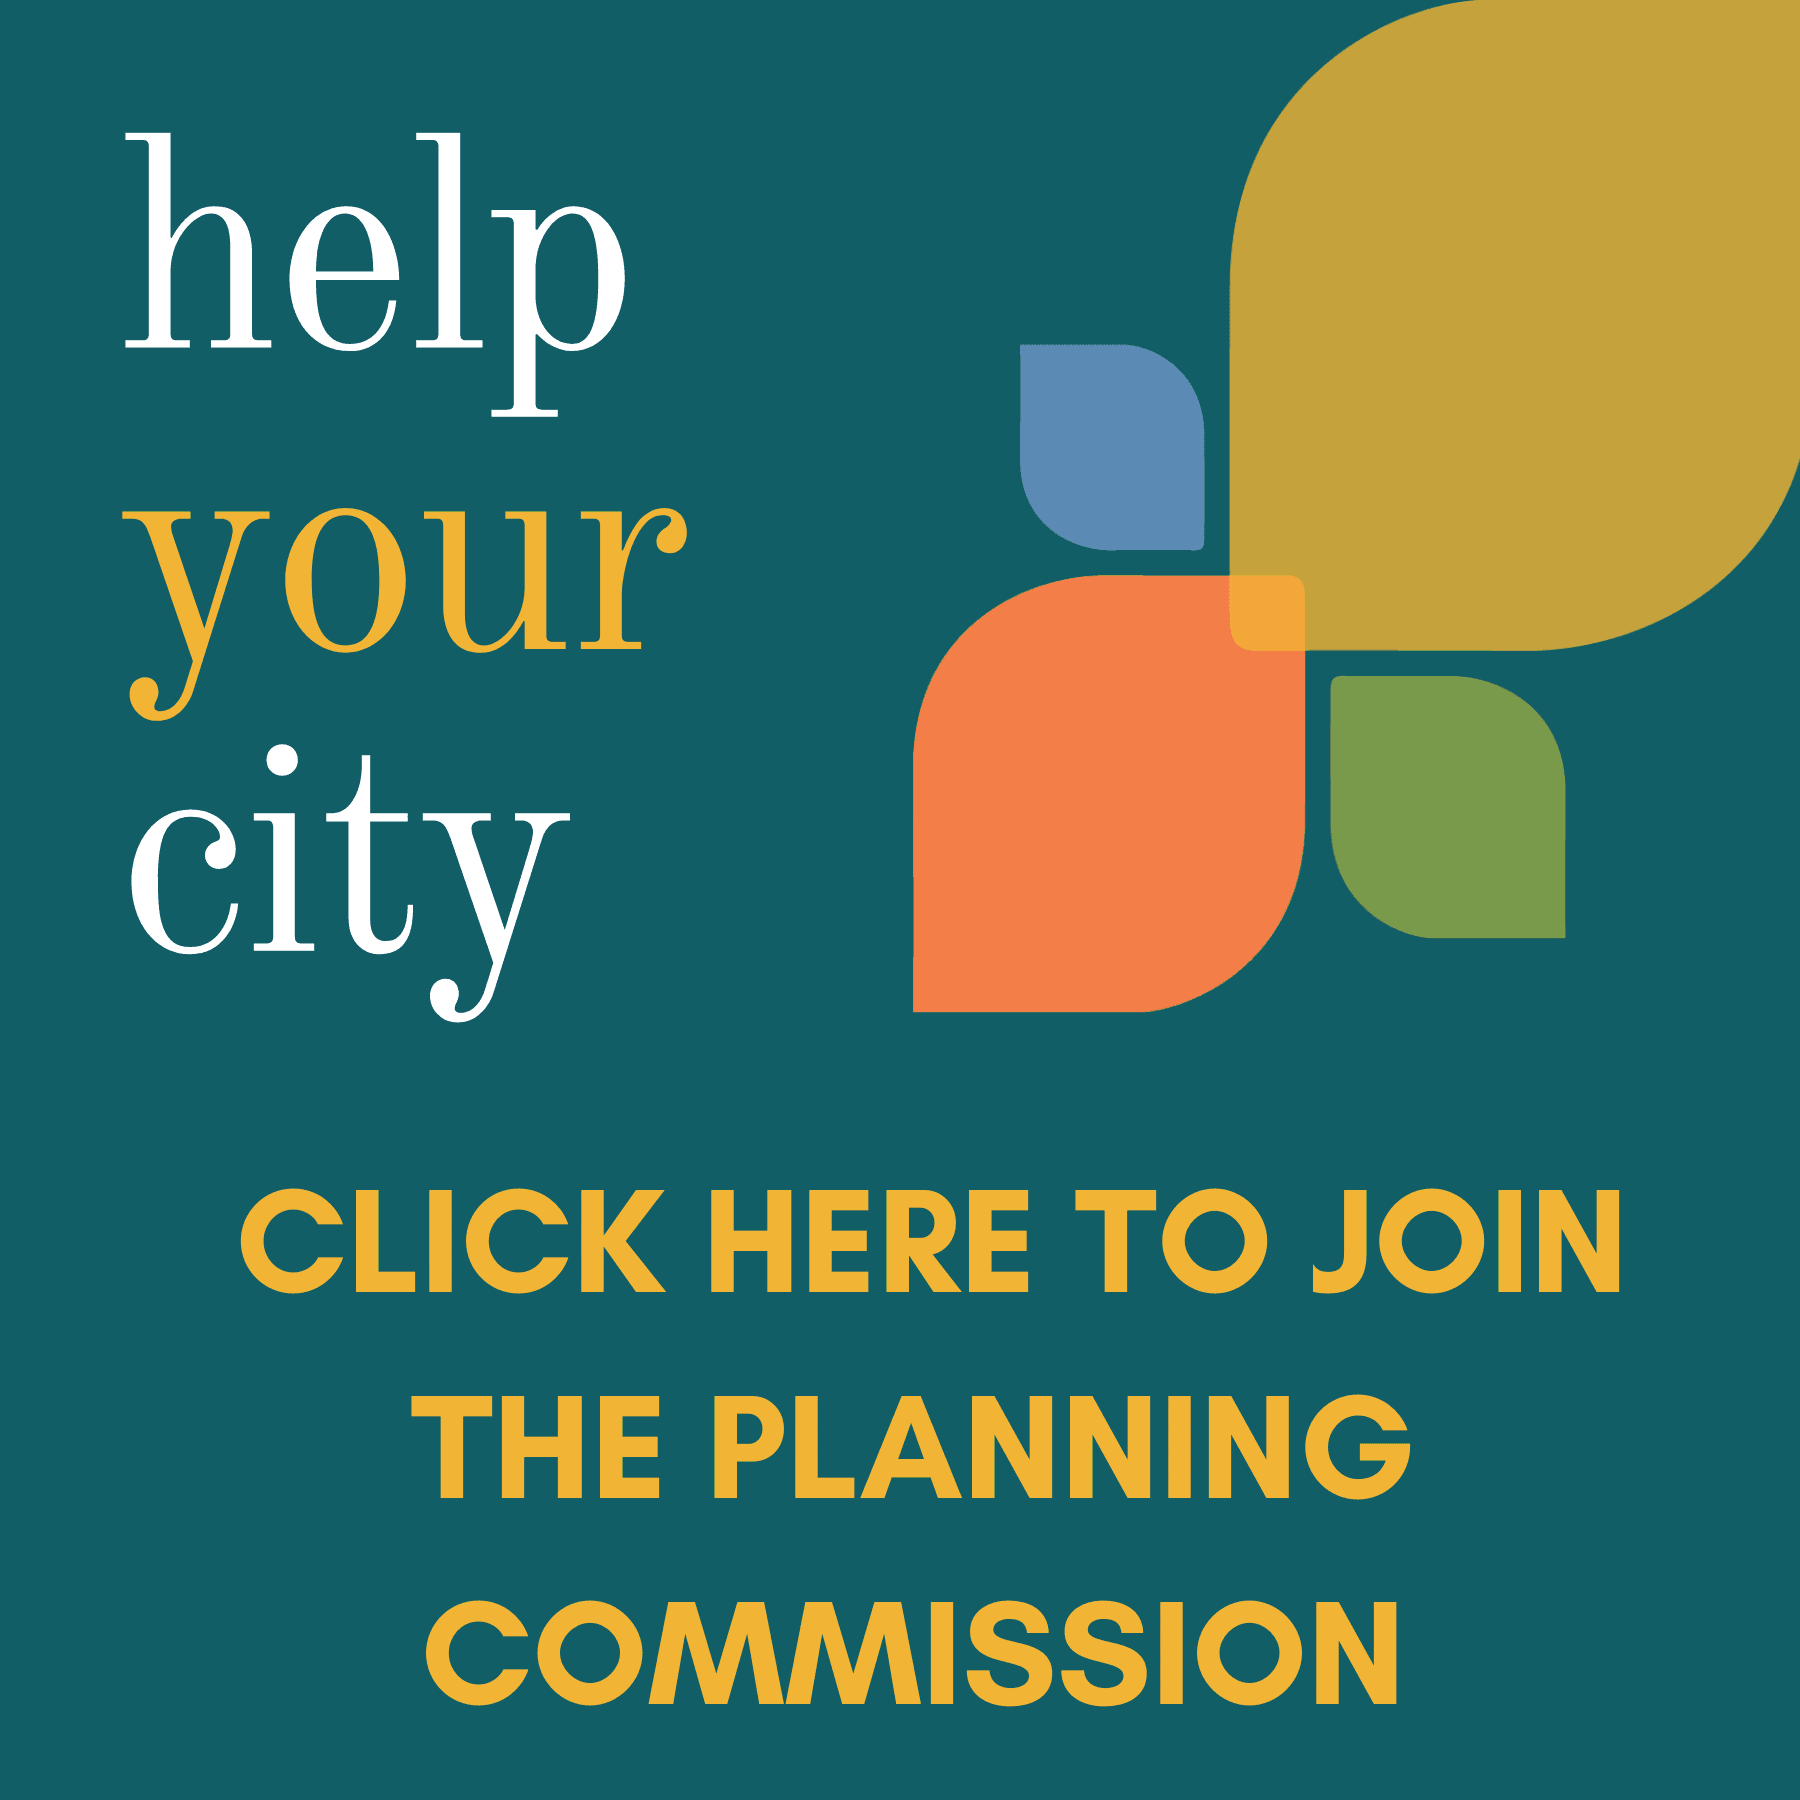 Planning commission join button